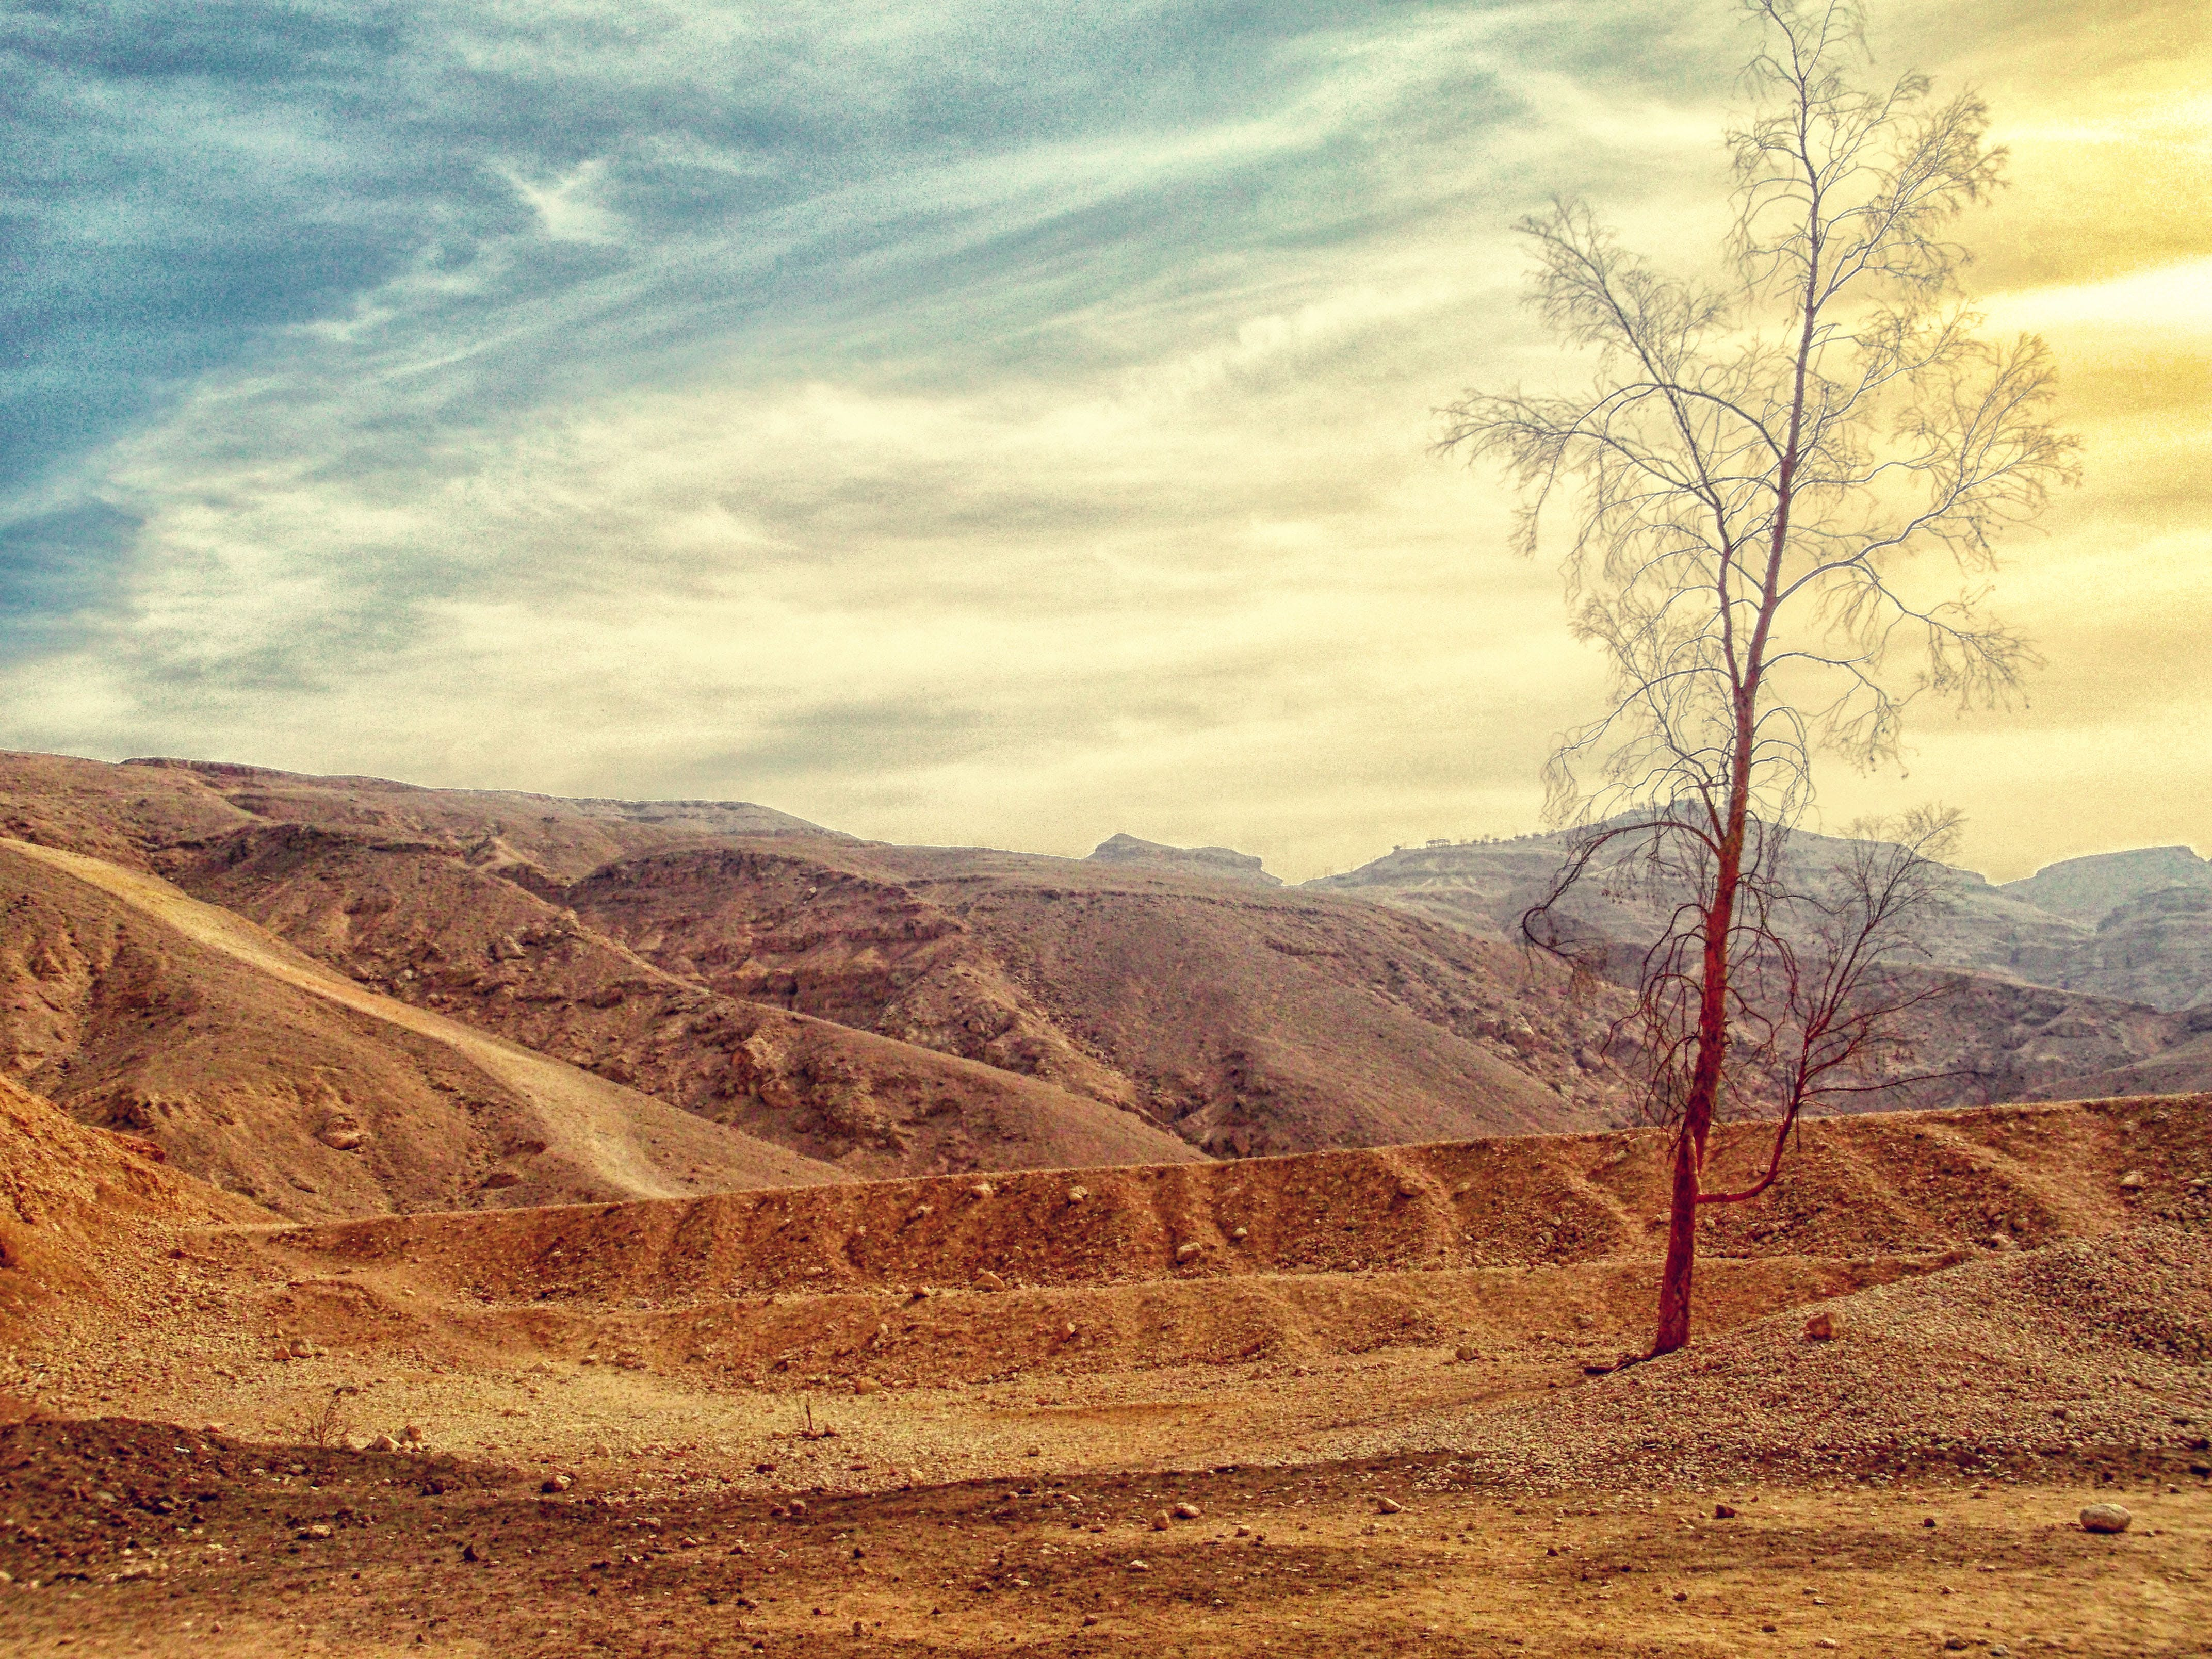 Nature wallpaper of landscape, mountains, nature, sand